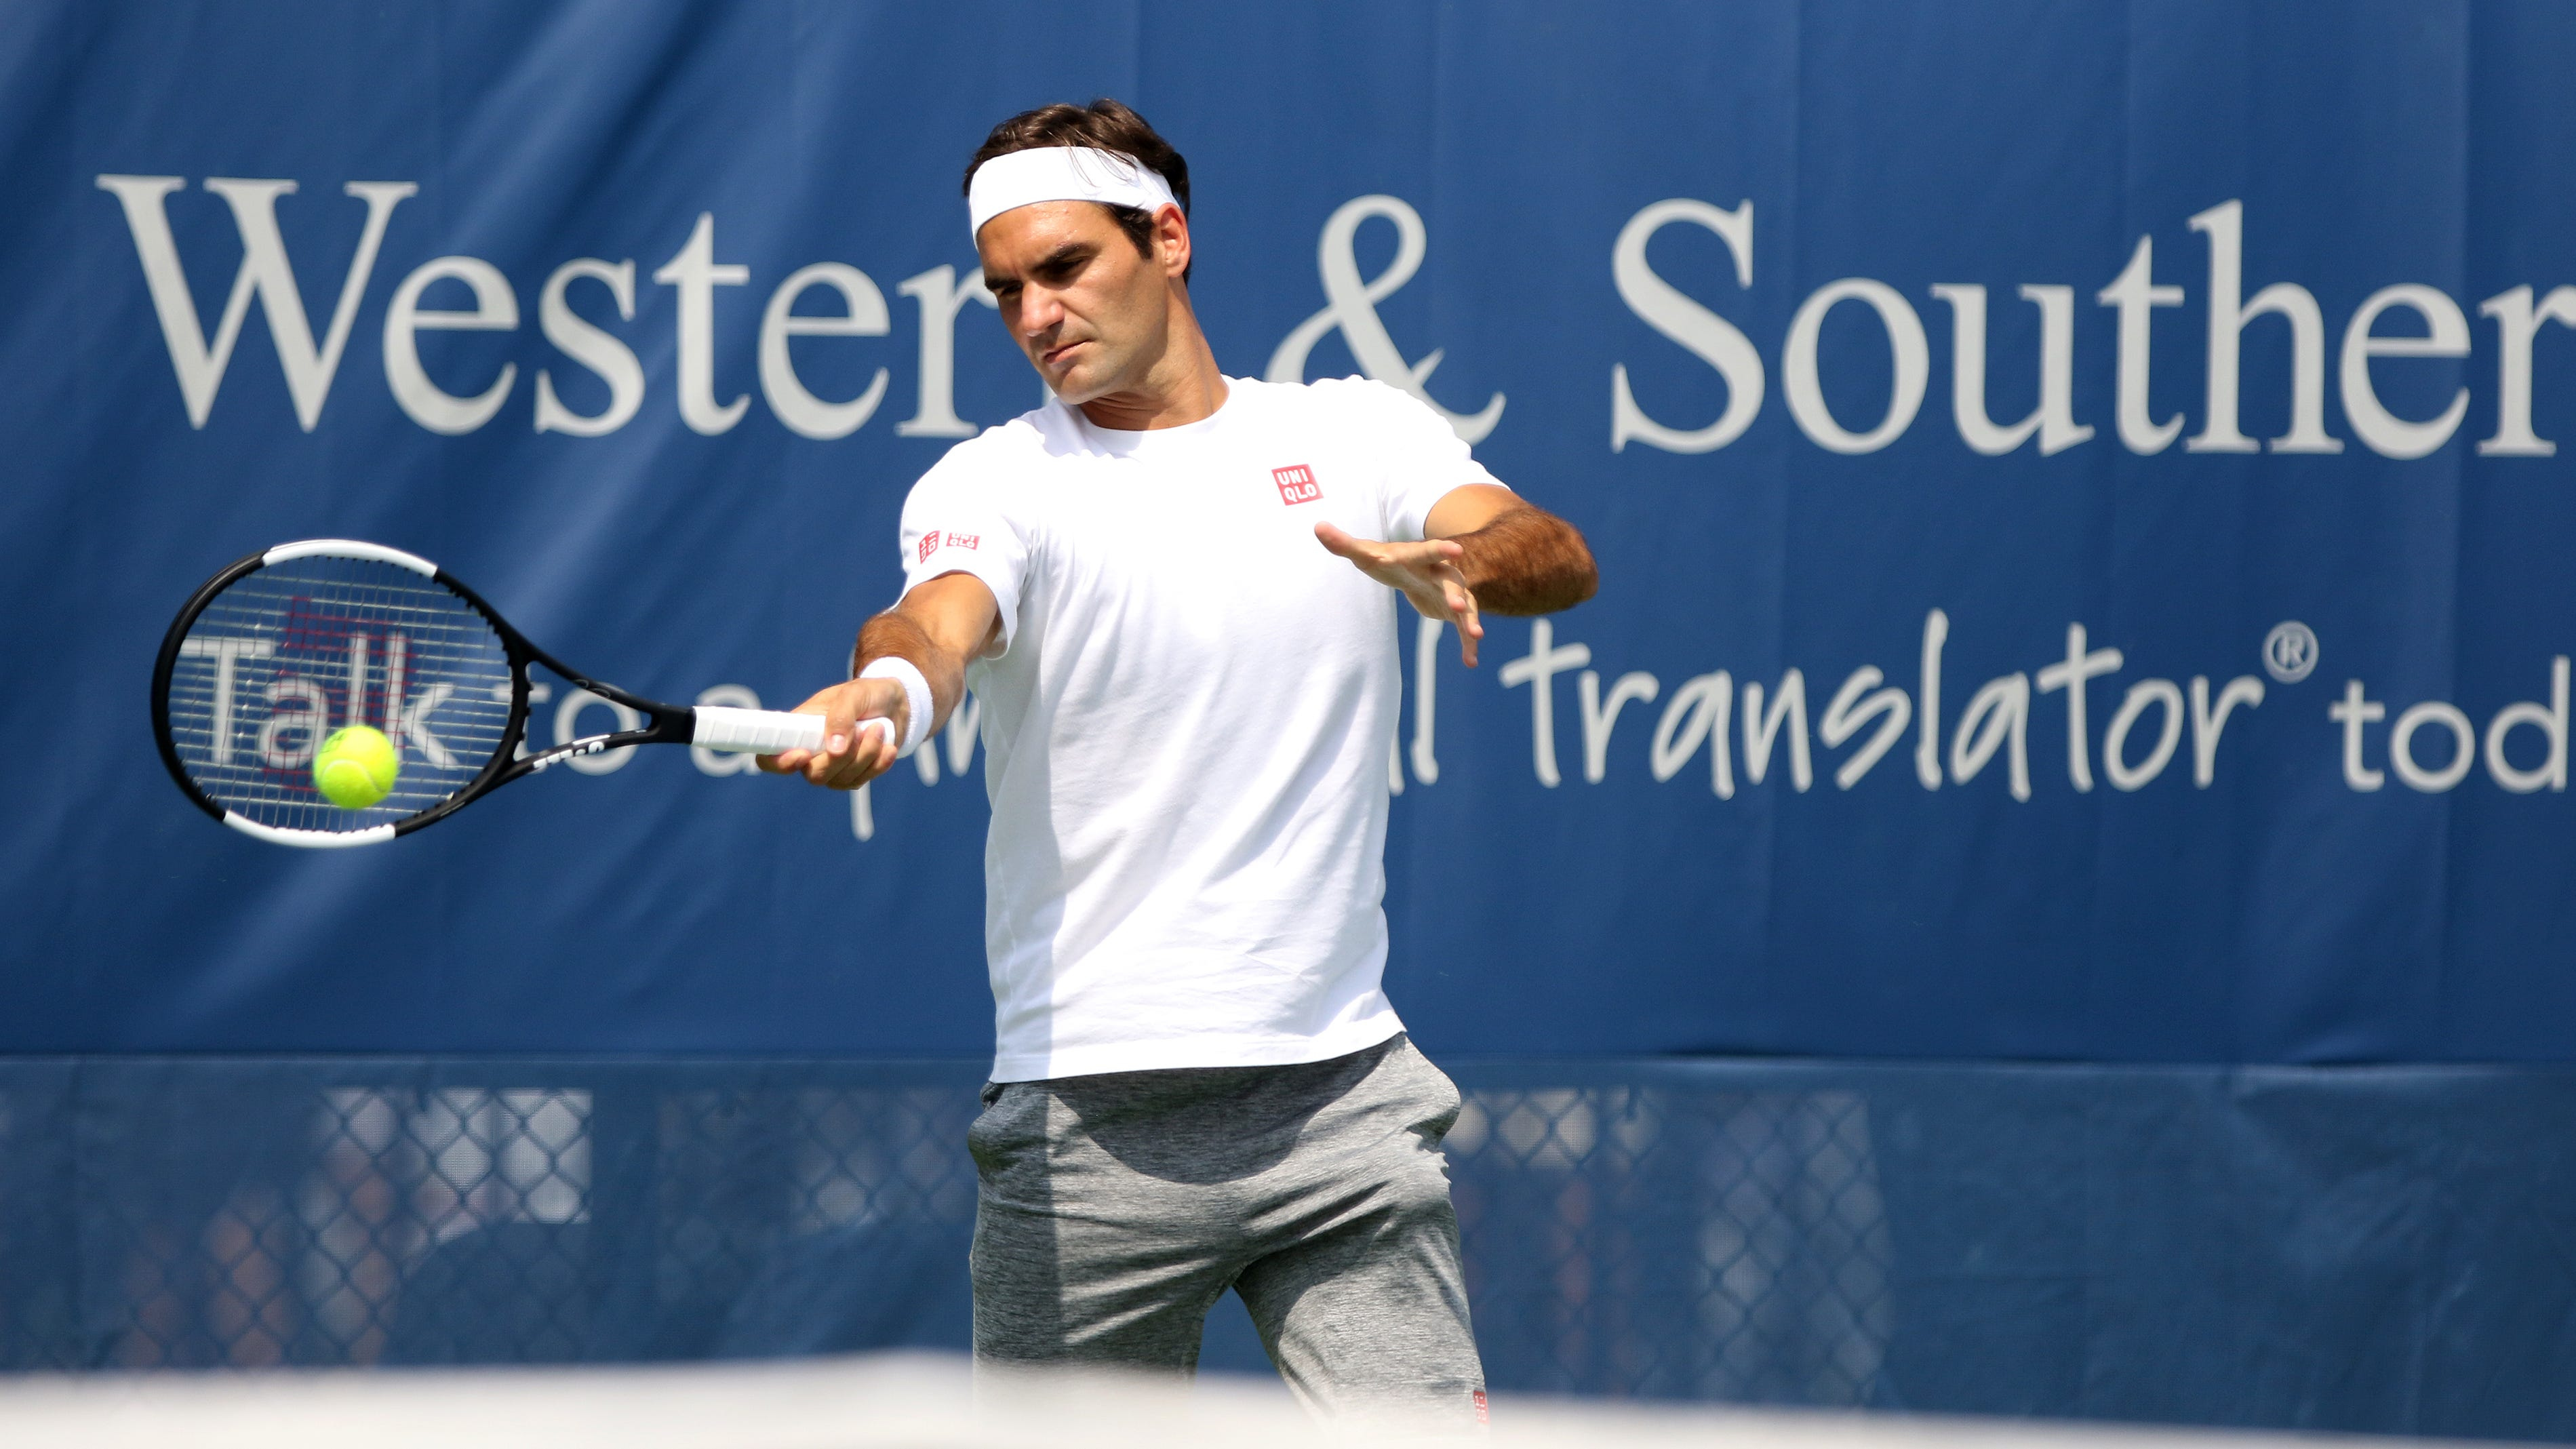 Live updates | Second round underway at Western & Southern Open, Serena Williams and Roger Federer set for an all-GOAT night session